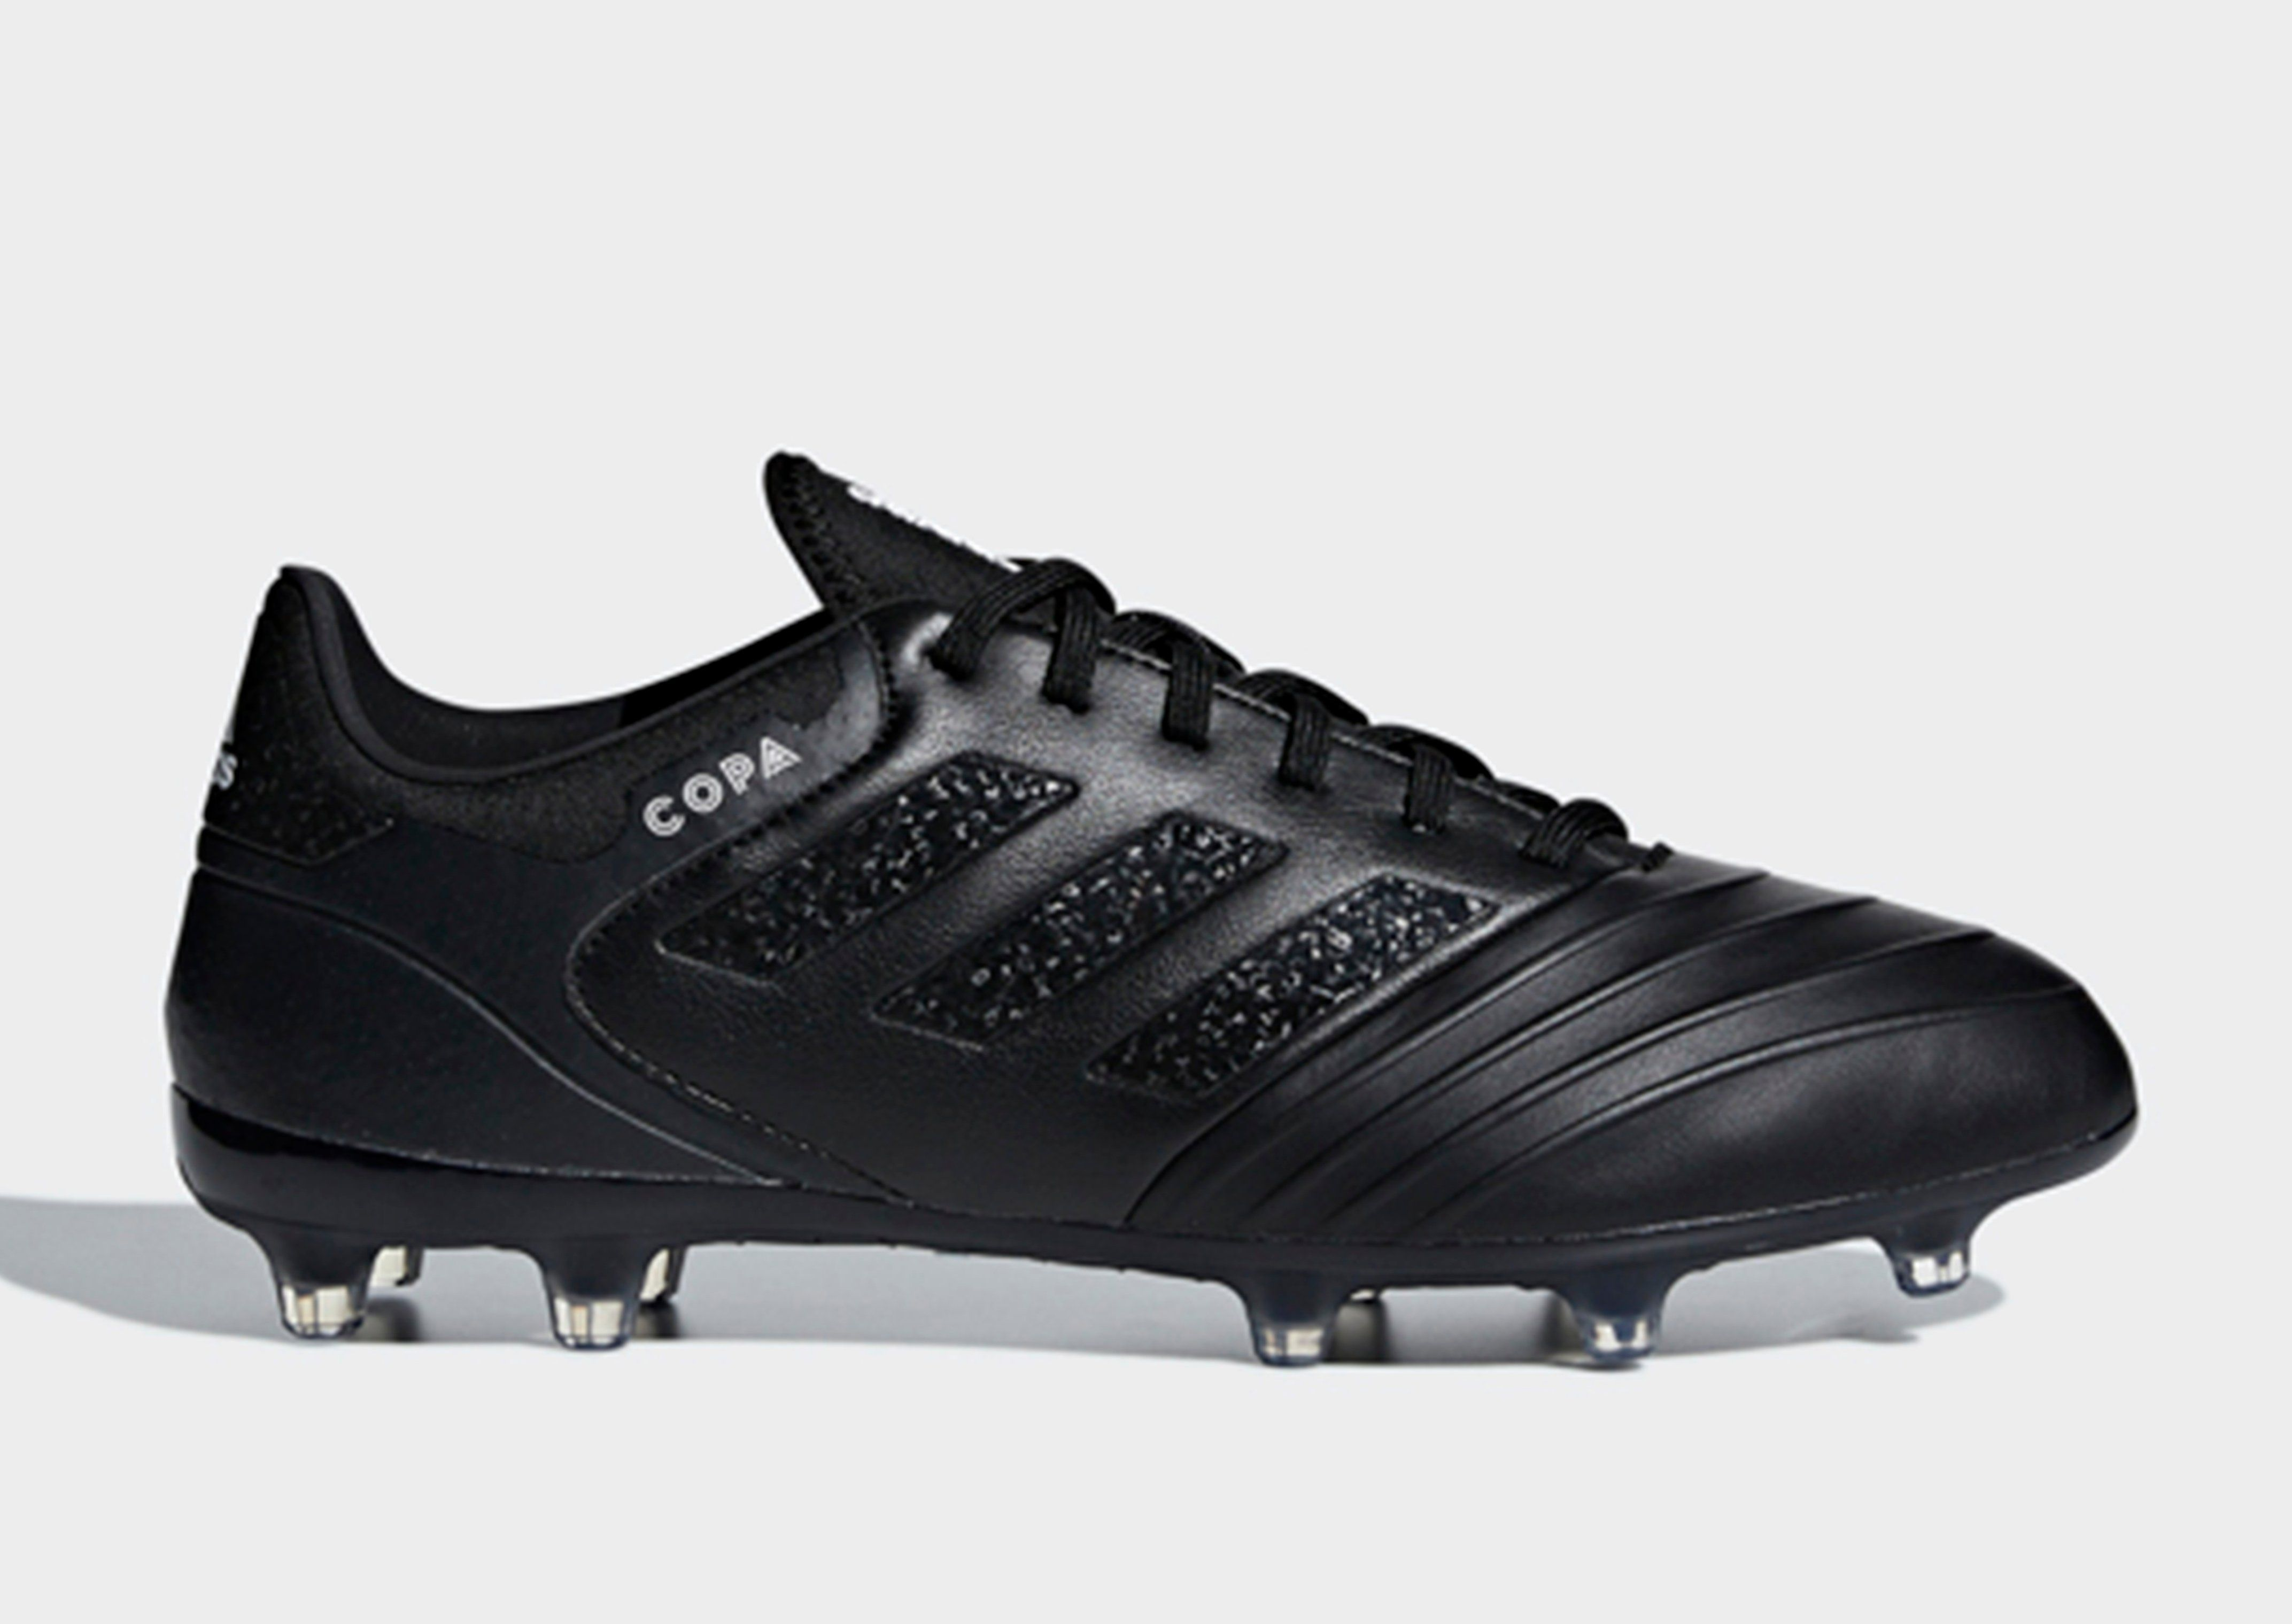 online store f0900 8455d ADIDAS Copa 18.2 Firm Ground Boots   JD Sports